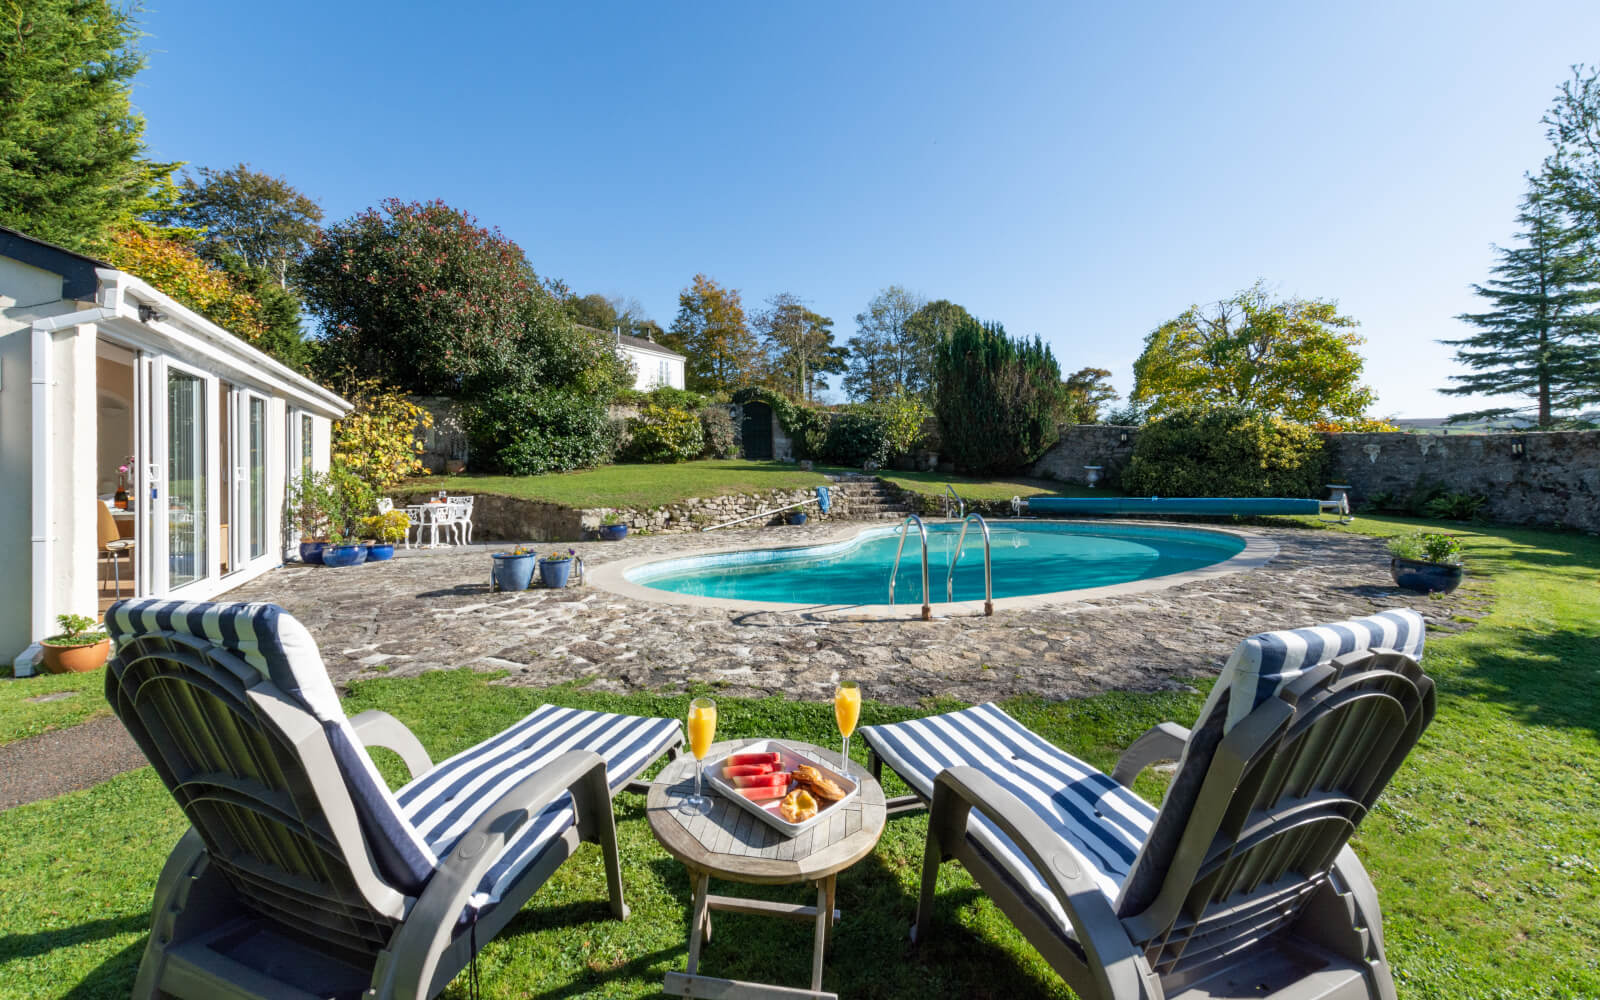 Holiday Cottages With Swimming Pools In Burnham Thorpe To Rent - Save up to 60%